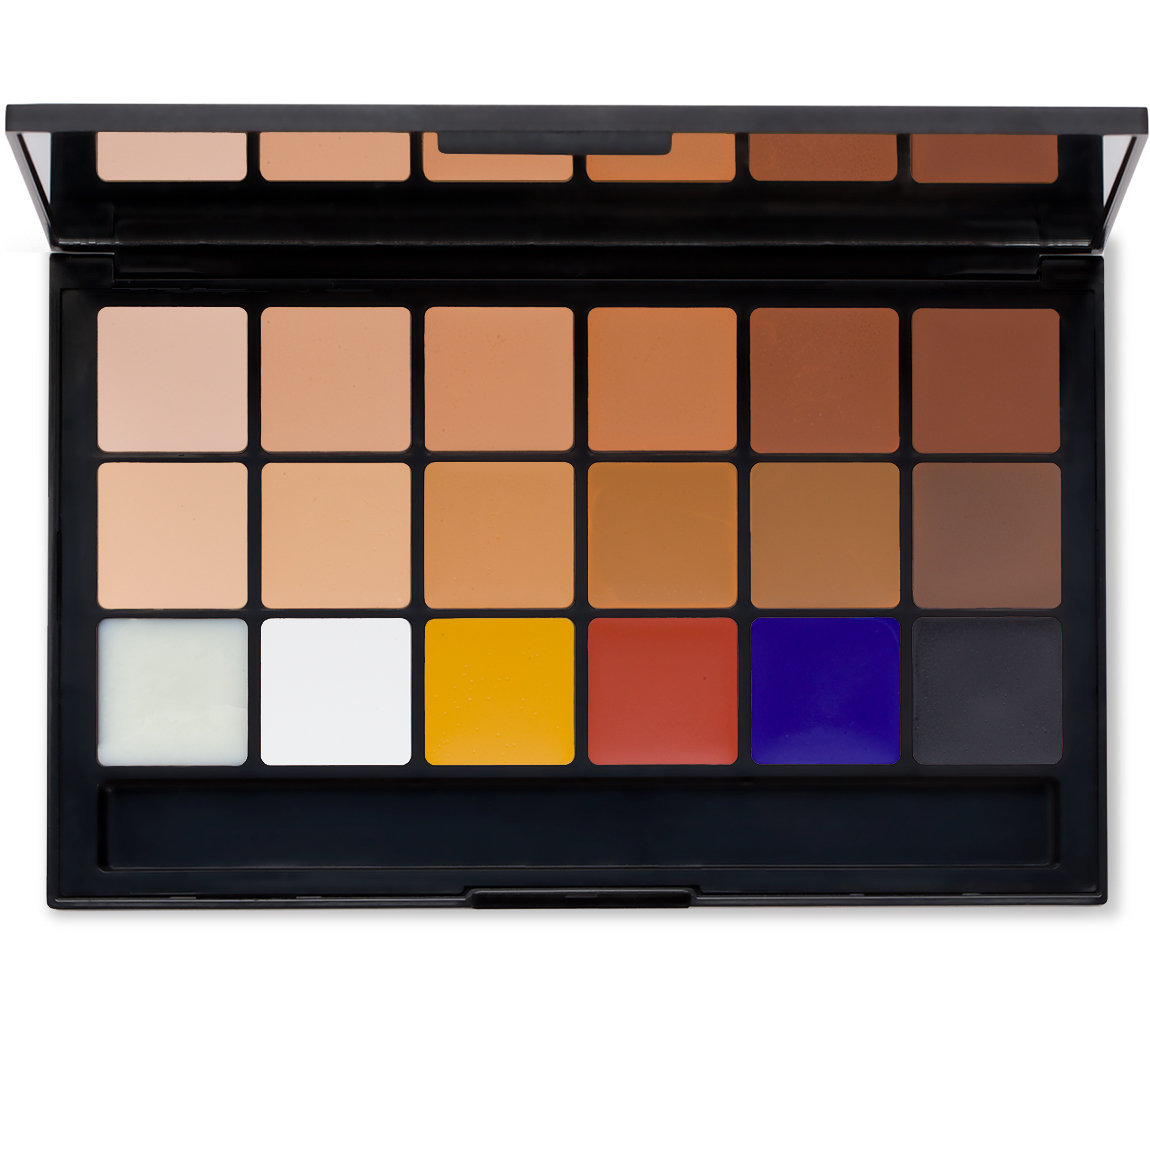 RCMA Makeup Kevin James Bennet Complexion Palette product swatch.